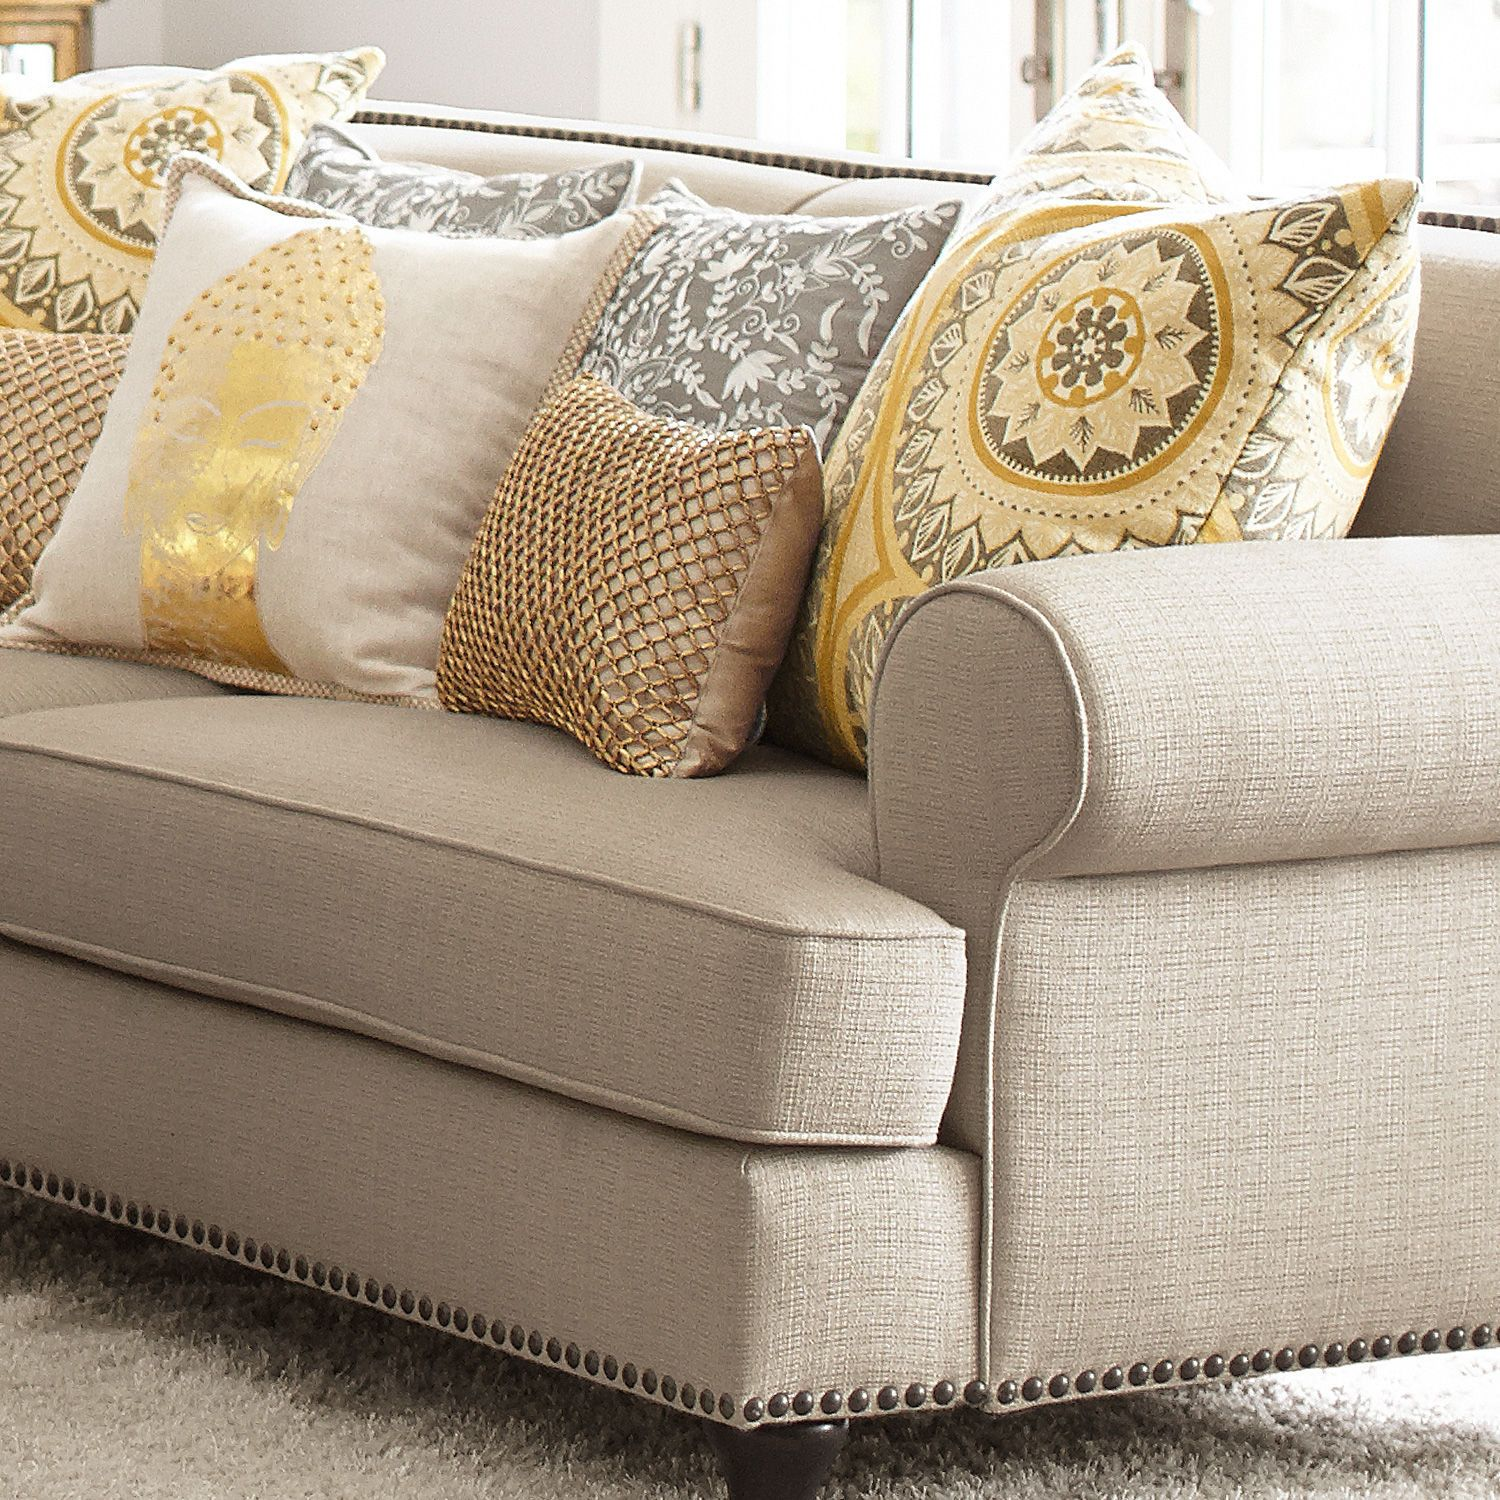 Imgp9458 Large Throw Pillows Couch Cushions Colourful Cushions